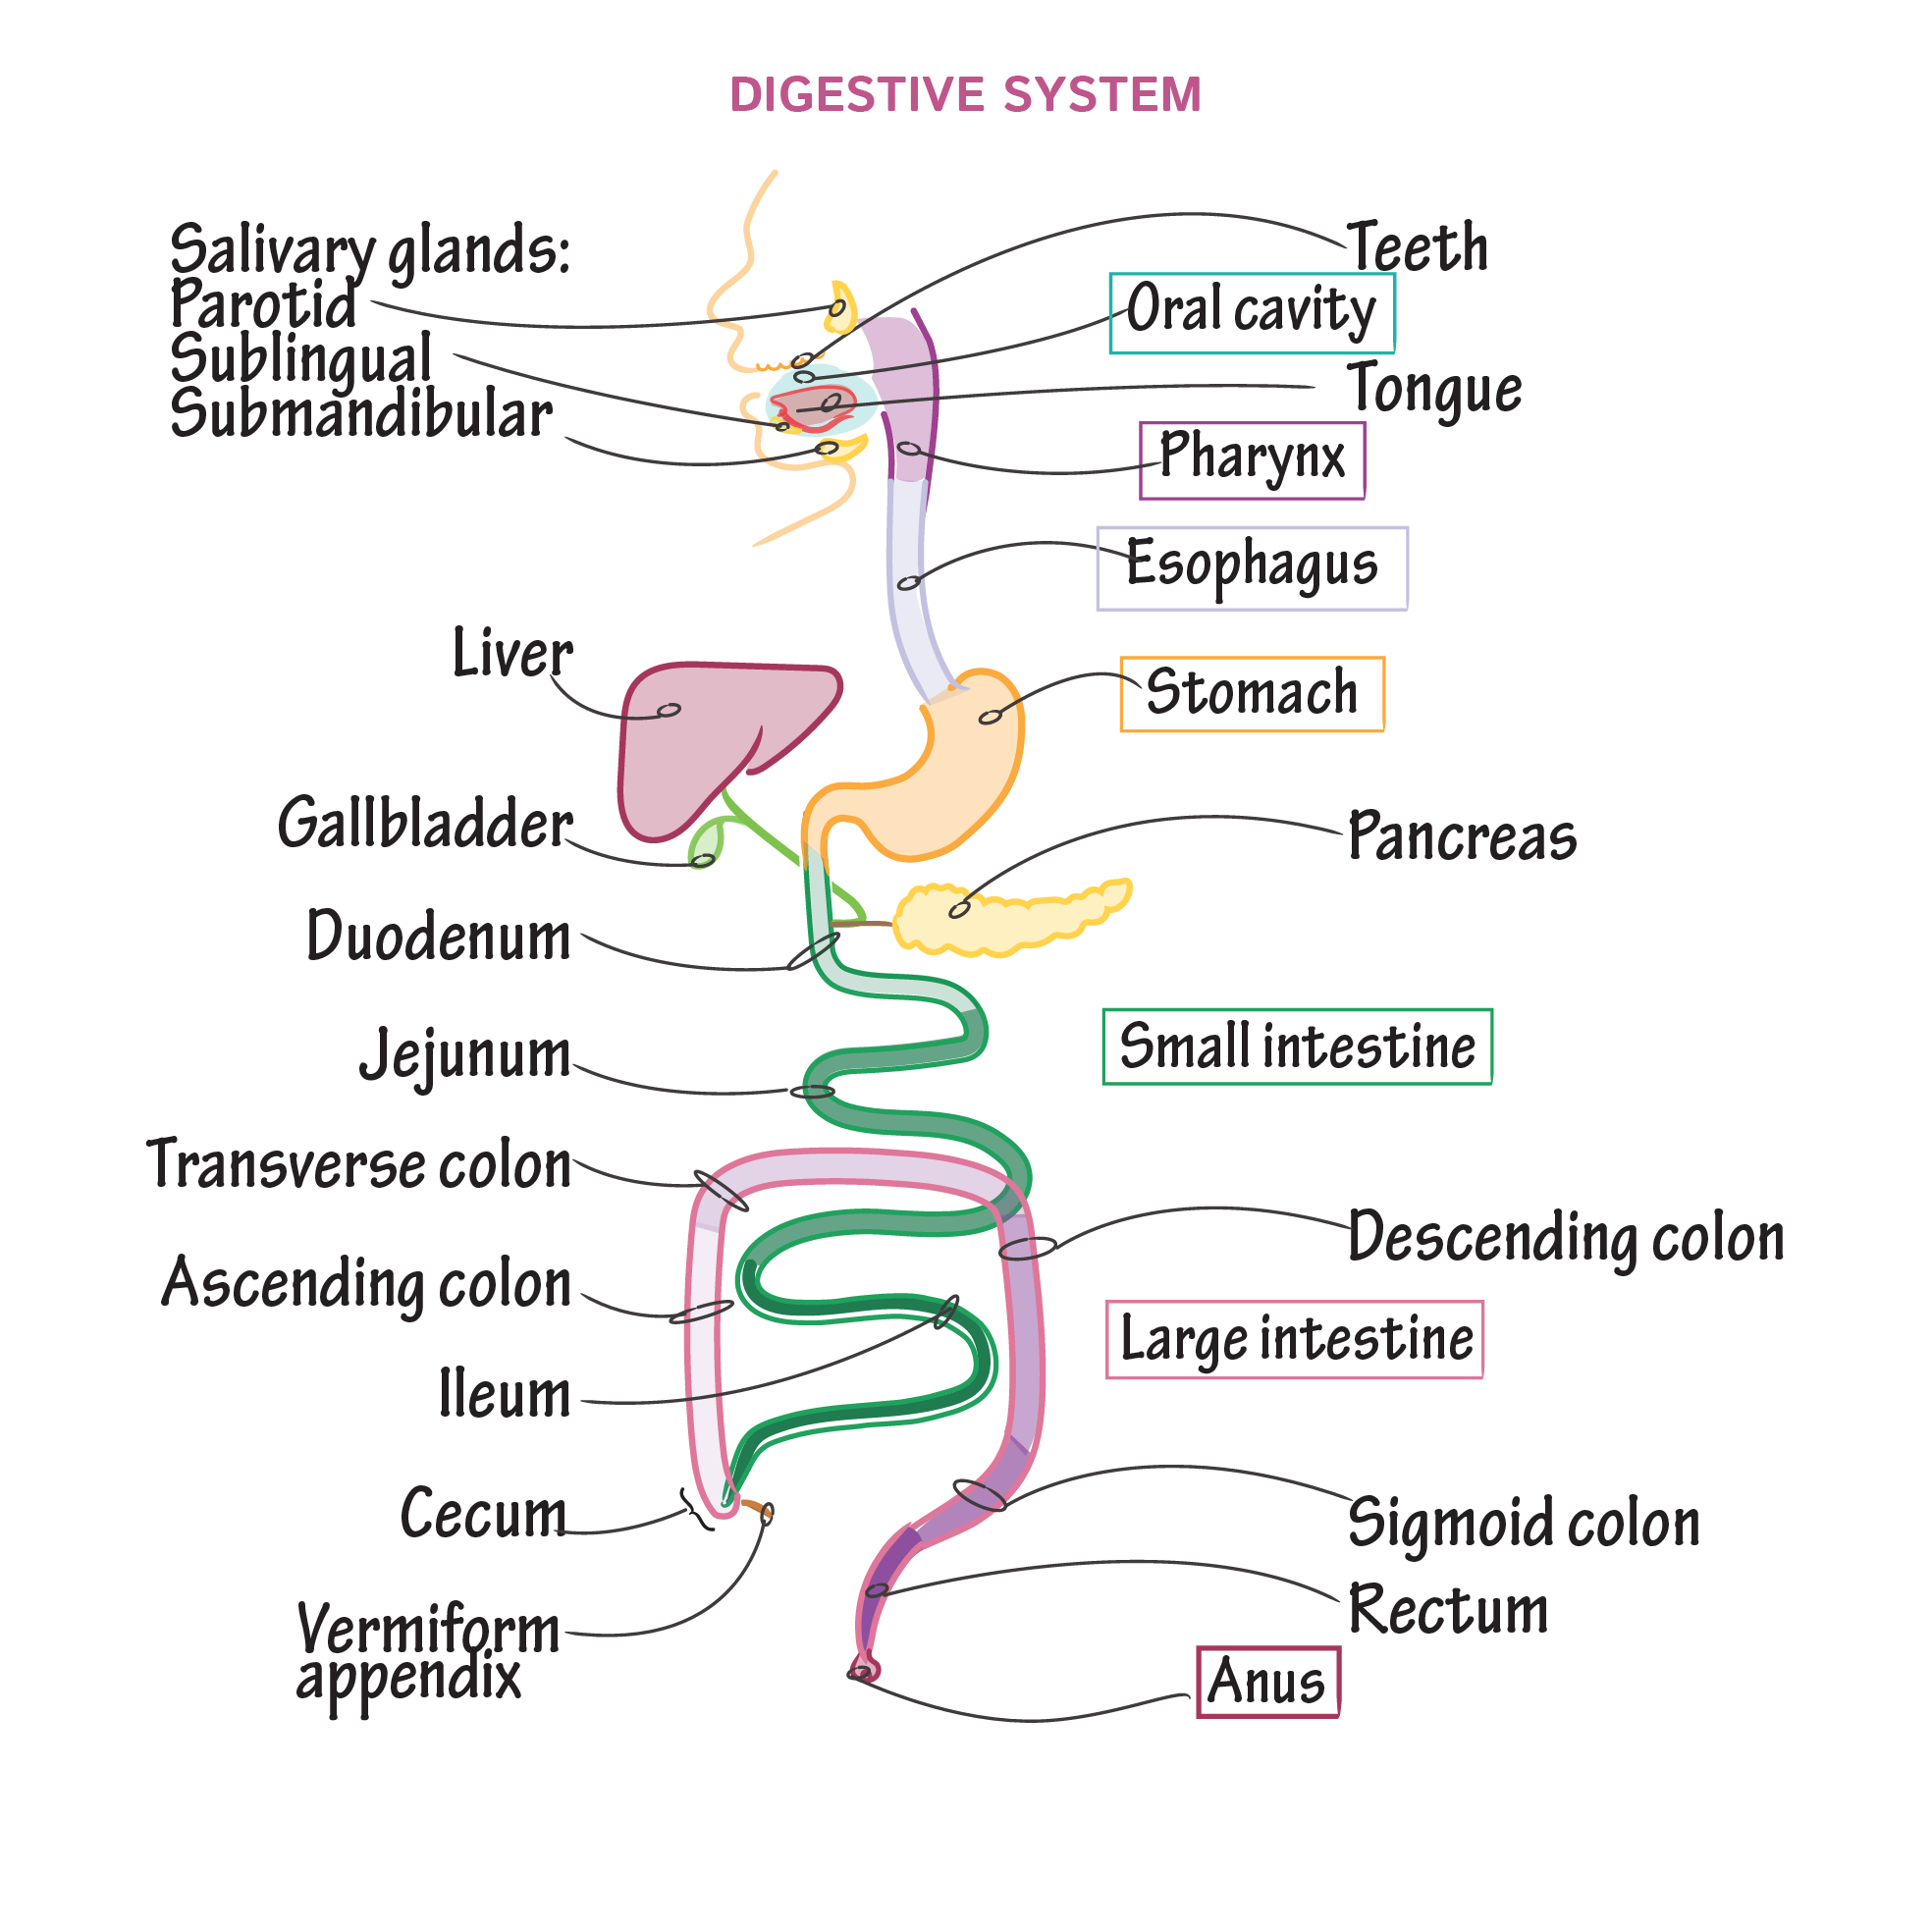 Physiology Tutorials Draw It To Know It Digestivesystem Gastrointestinal Anat Basic Anatomy And Physiology Medical School Studying Anatomy And Physiology